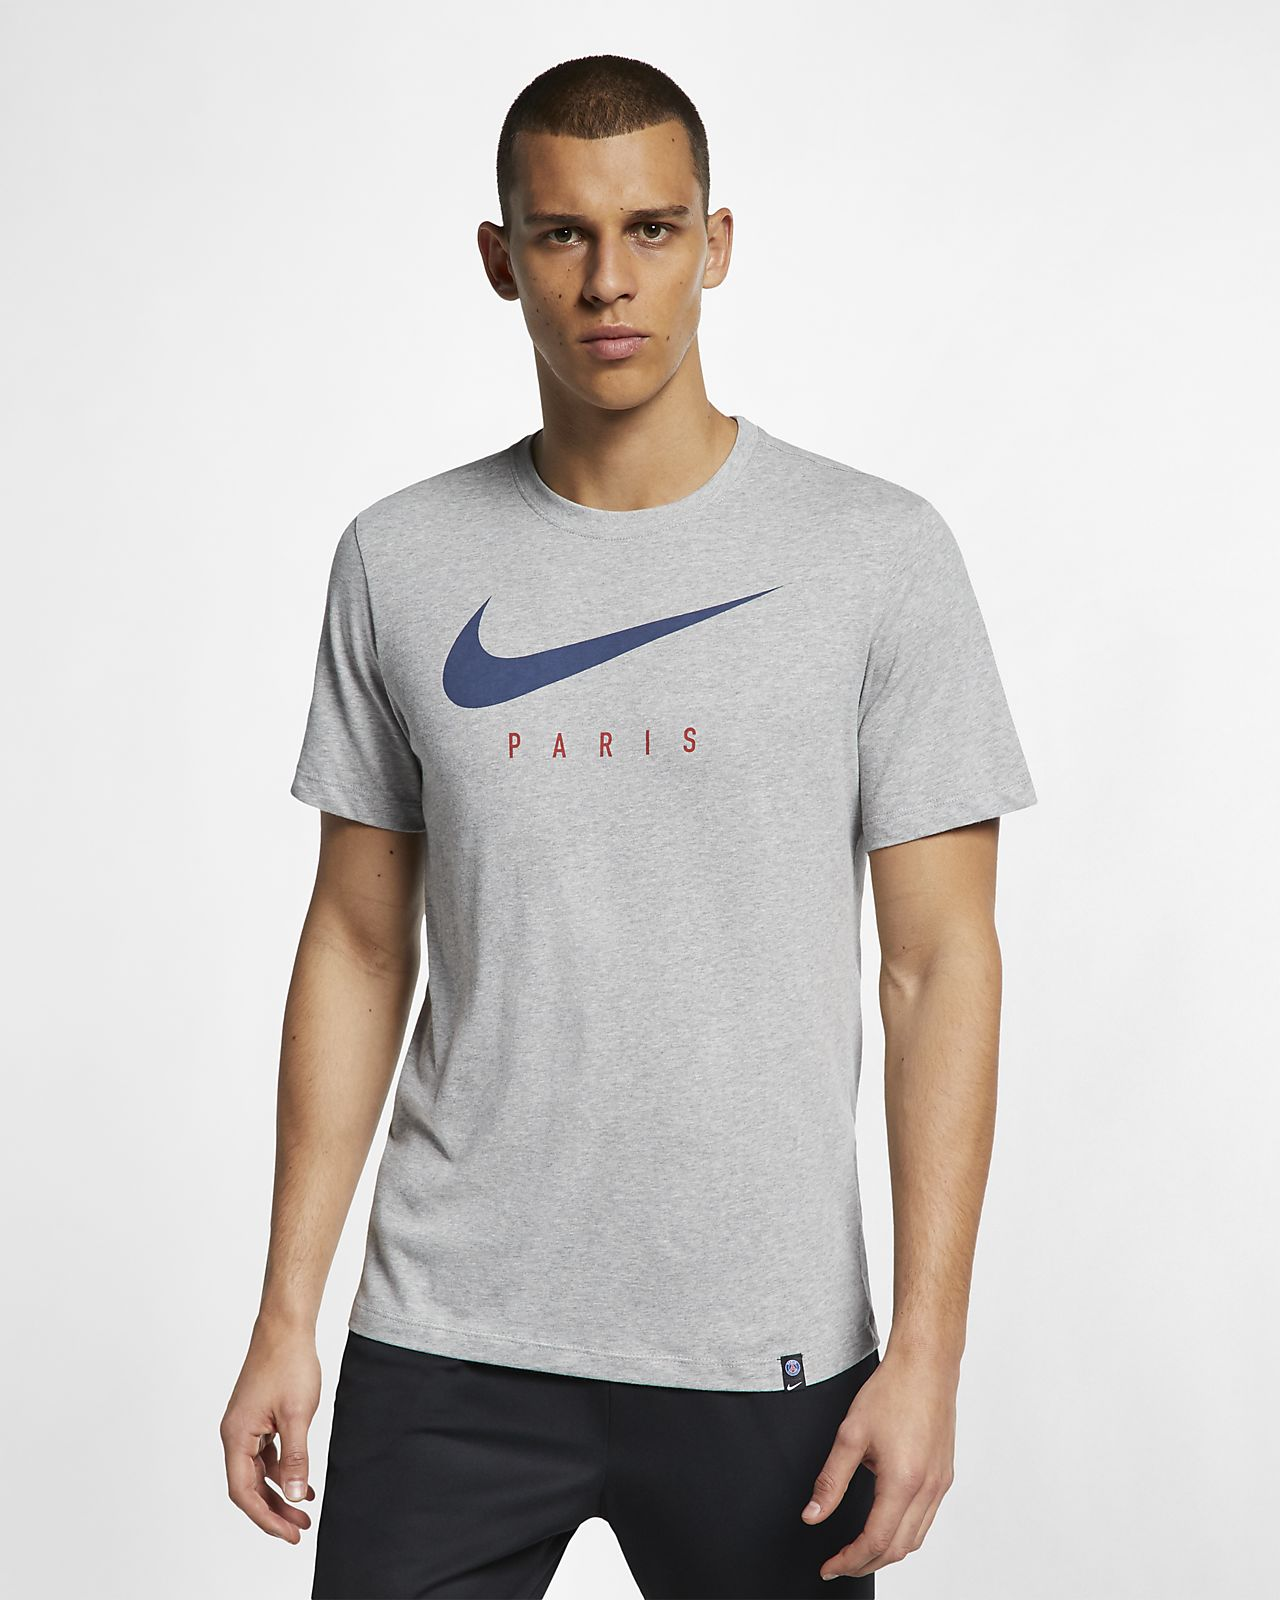 Tee-shirt de football Nike Dri-FIT Paris St-Germain pour Homme